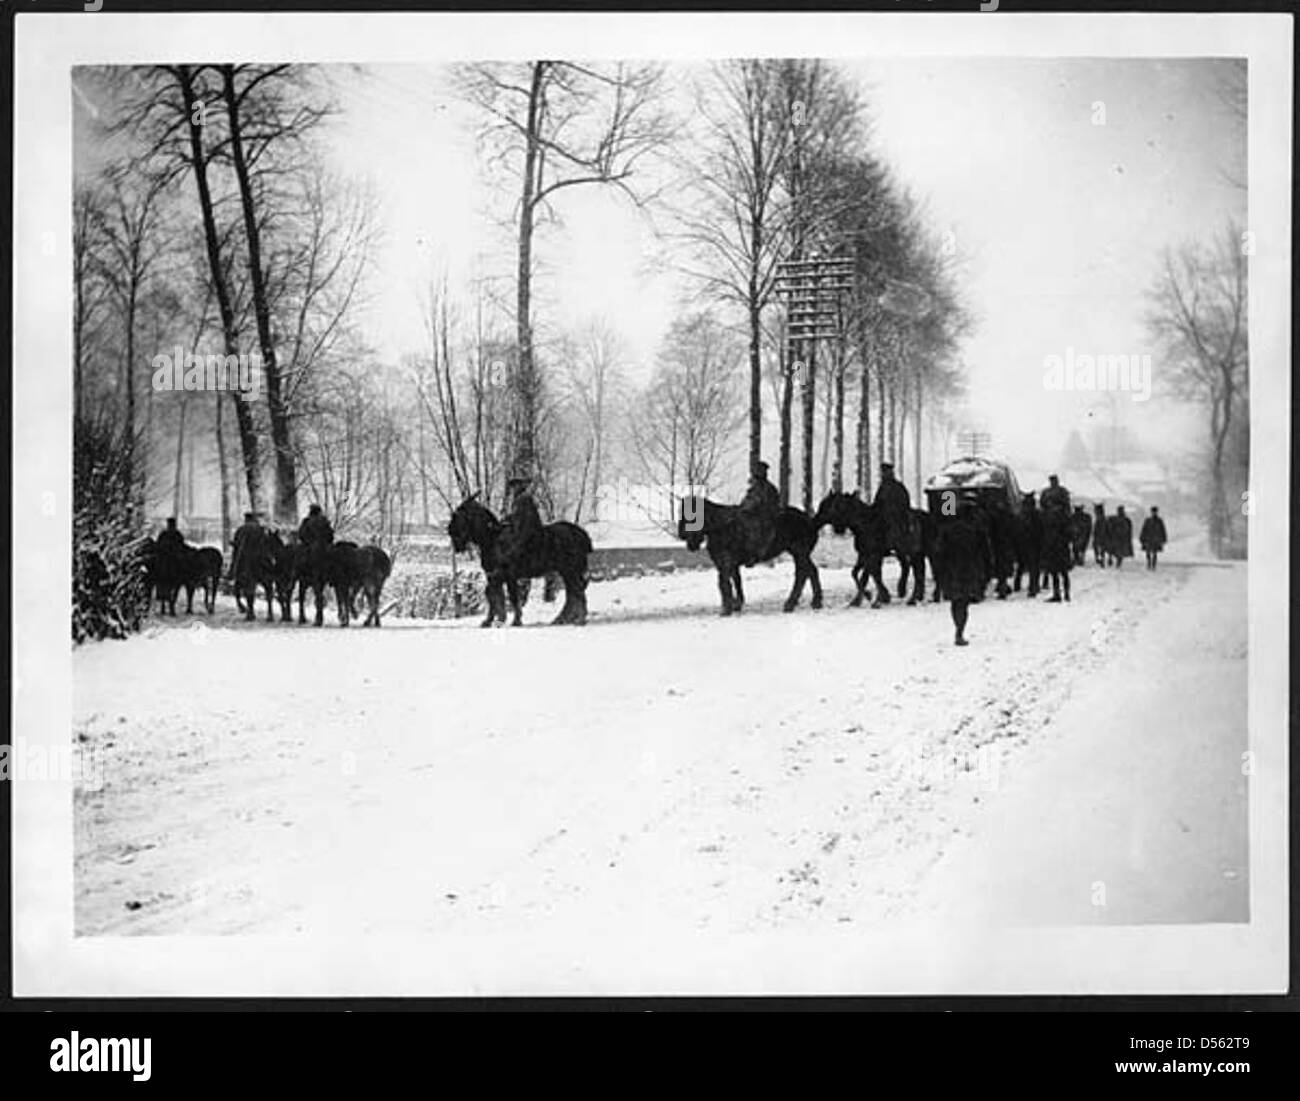 Transport horses going to water - Stock Image